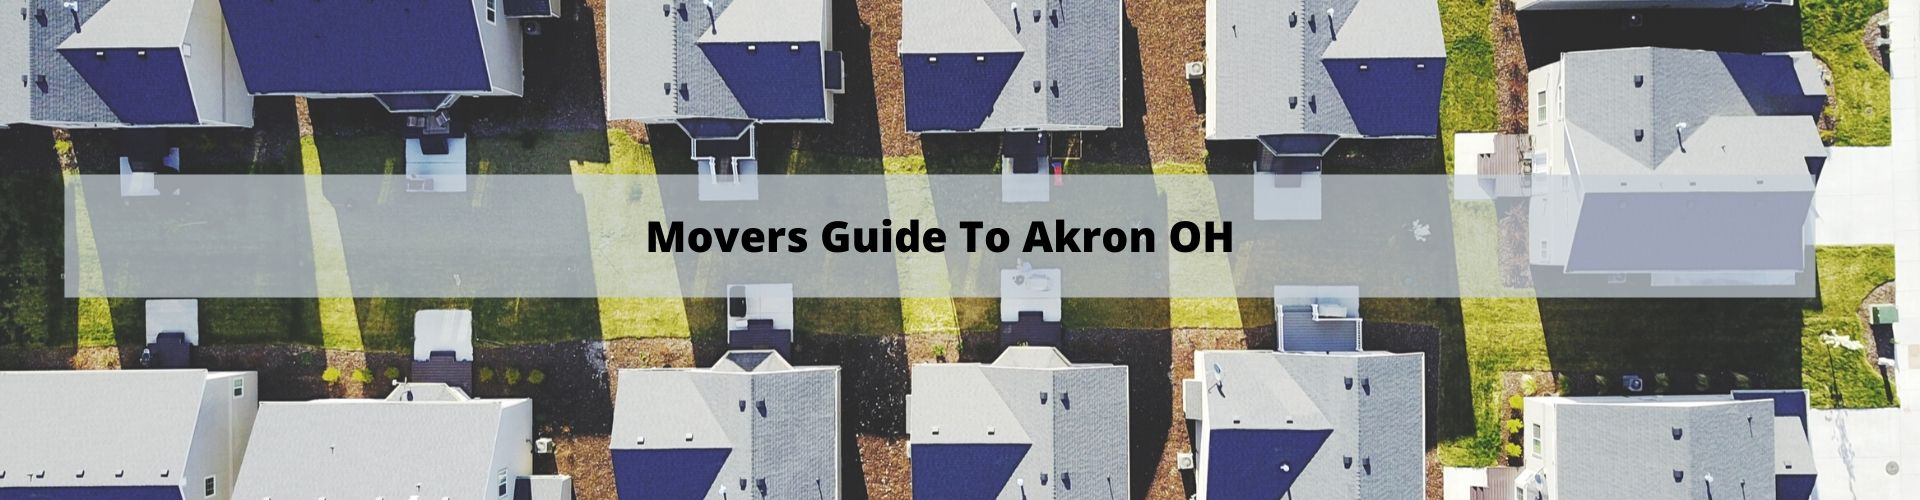 Mover's Guide to Akron OH